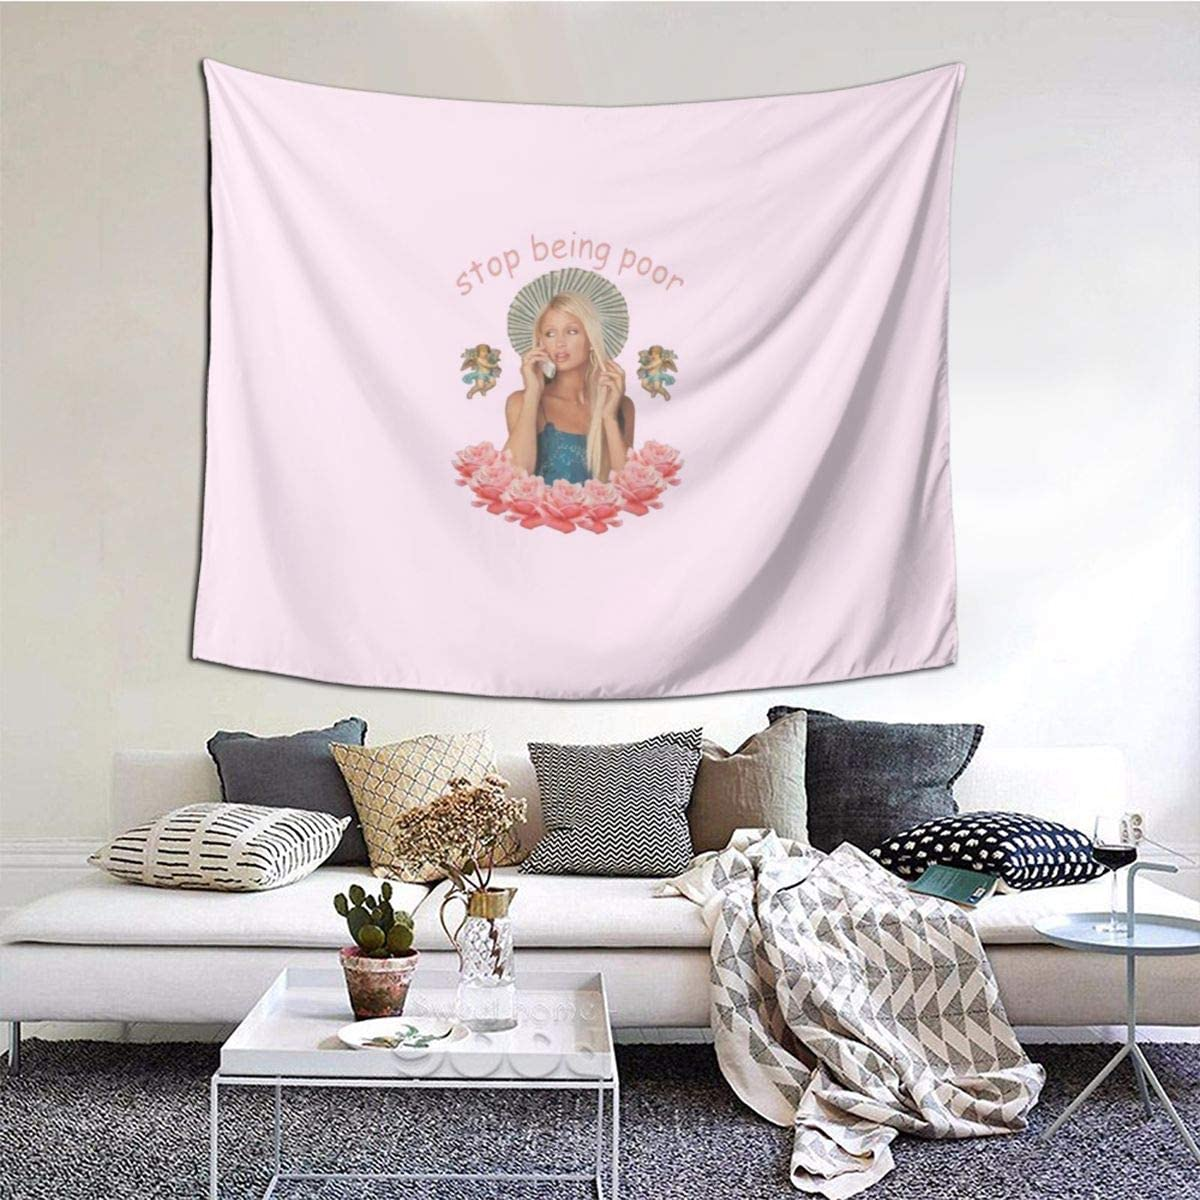 TANGOGO Tapestry Funny Paris Hilton Stop Being Poor Wall Hanging Home Decor for Living Room Bedroom Dorm Room 60 W X 51 H Inches